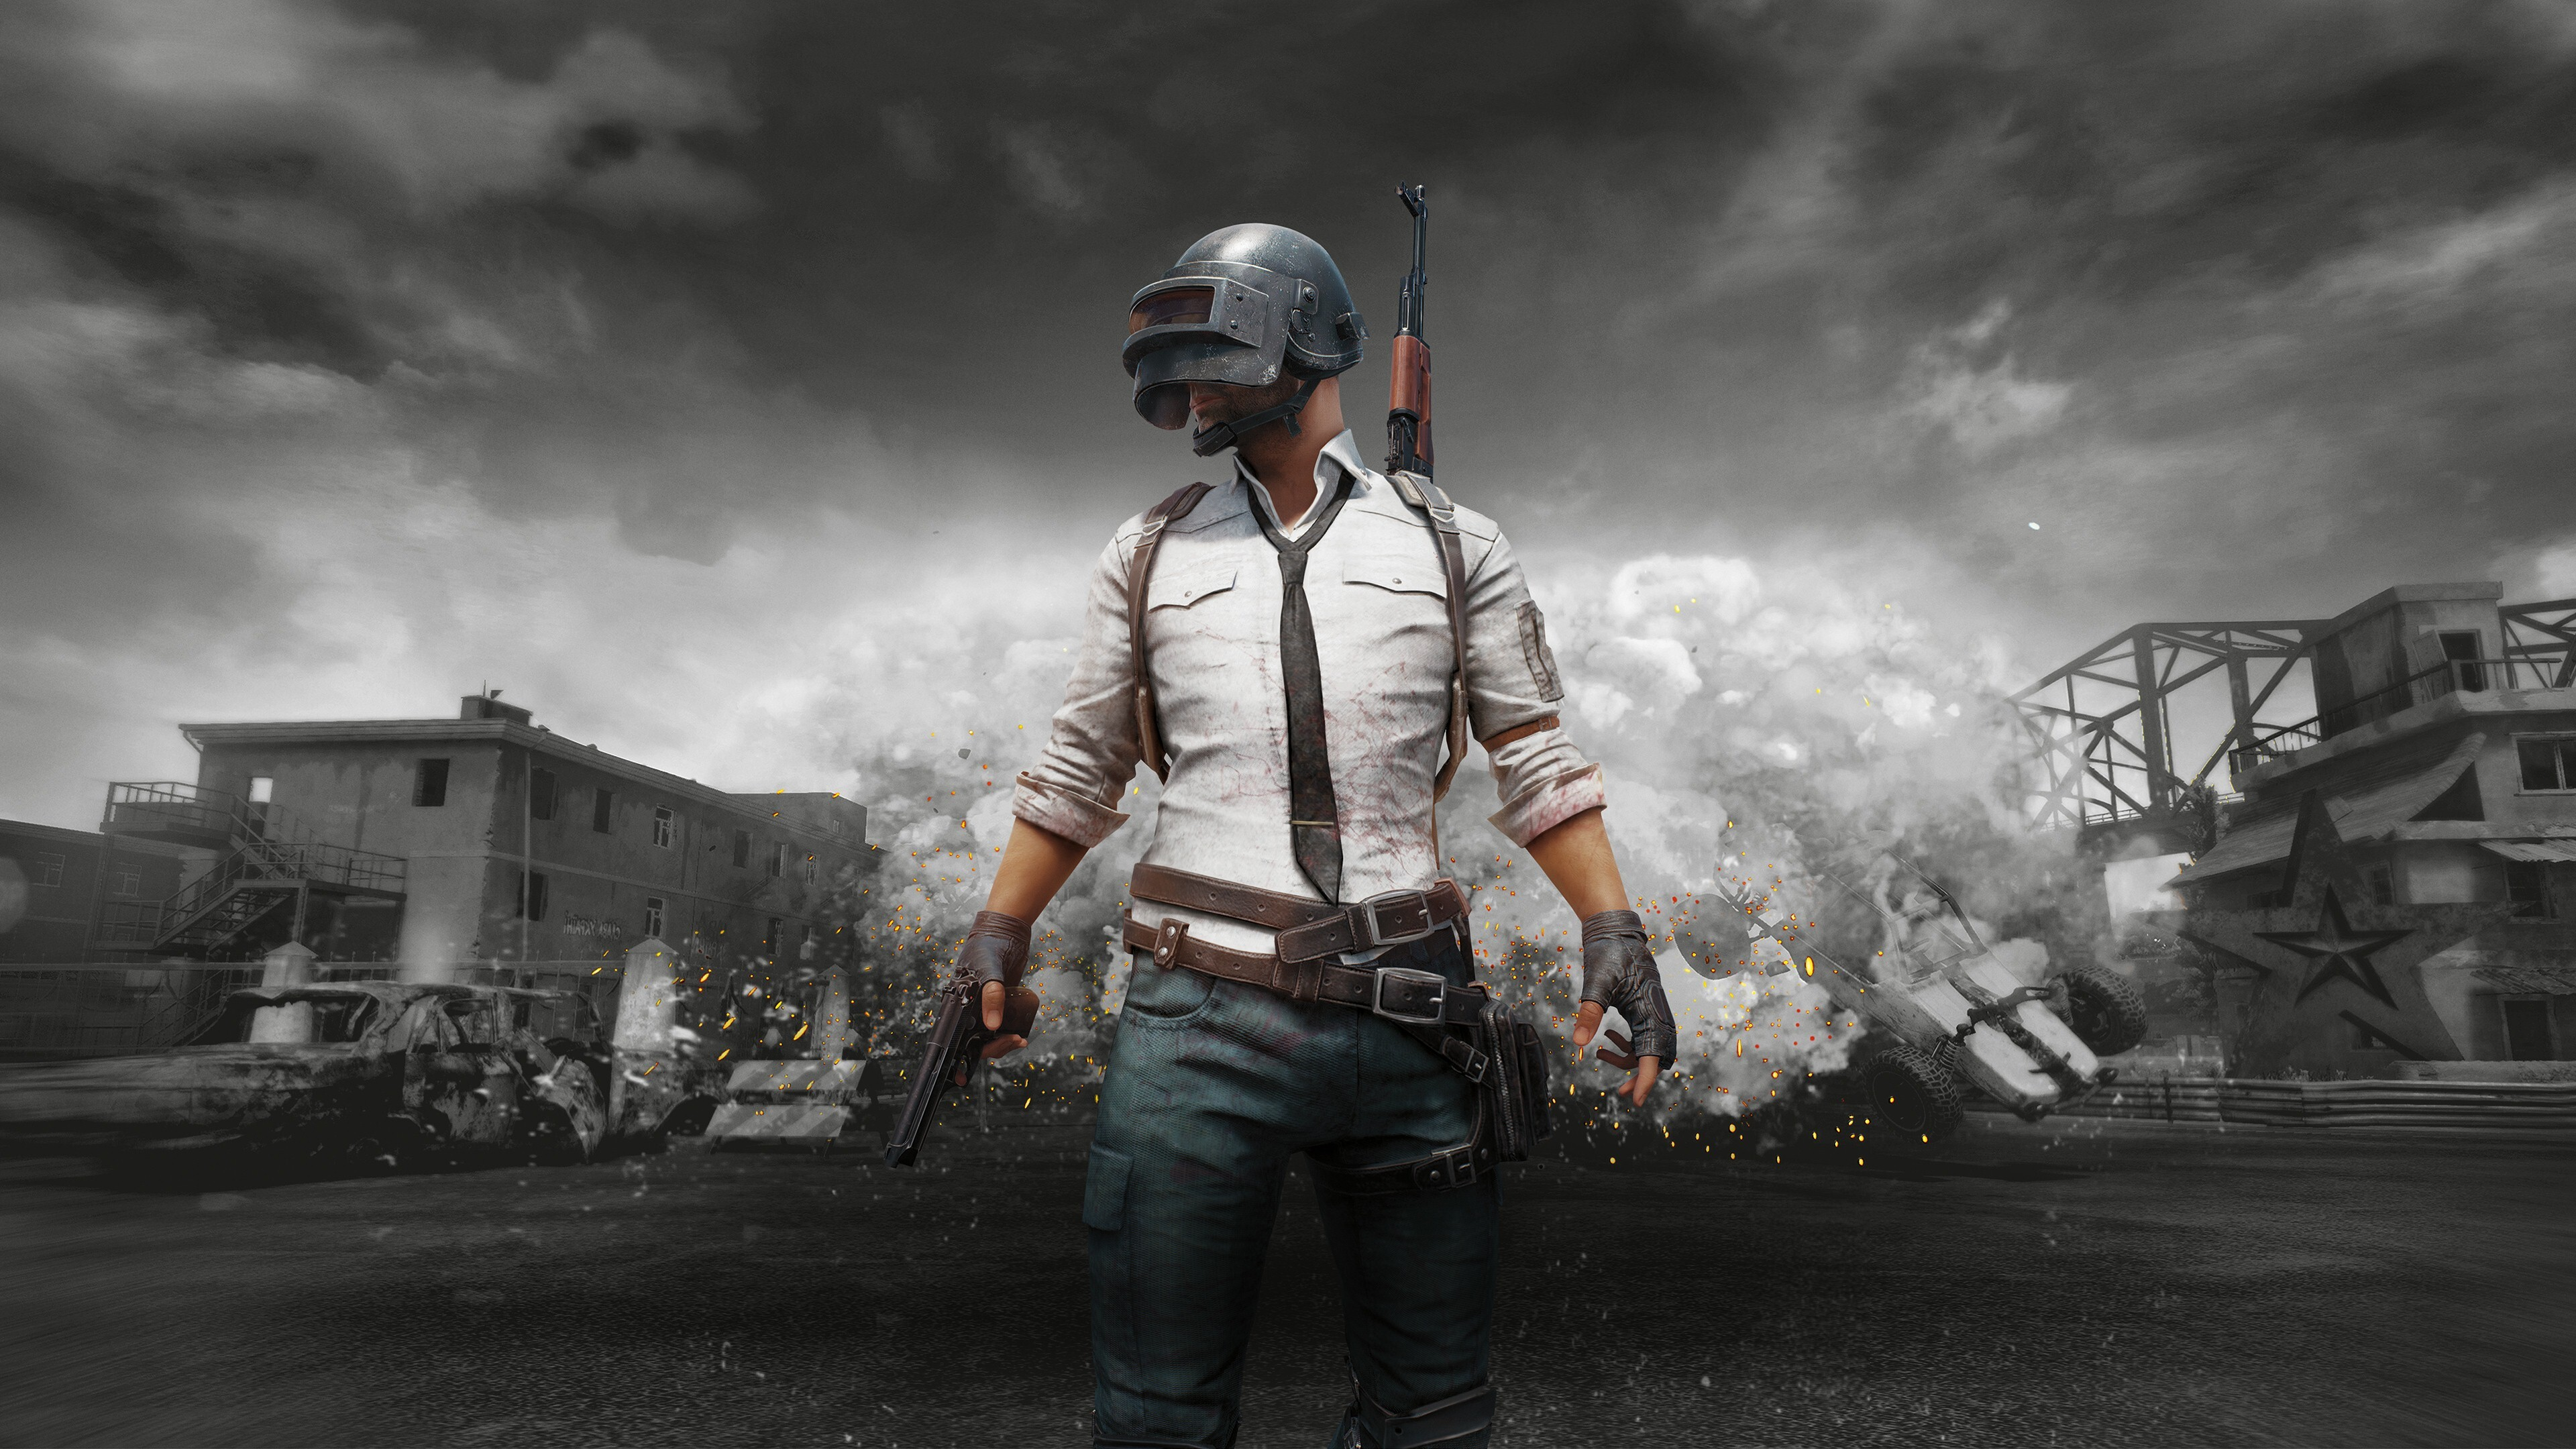 4K Poster Of PlayerUnknowns Battlegrounds Game